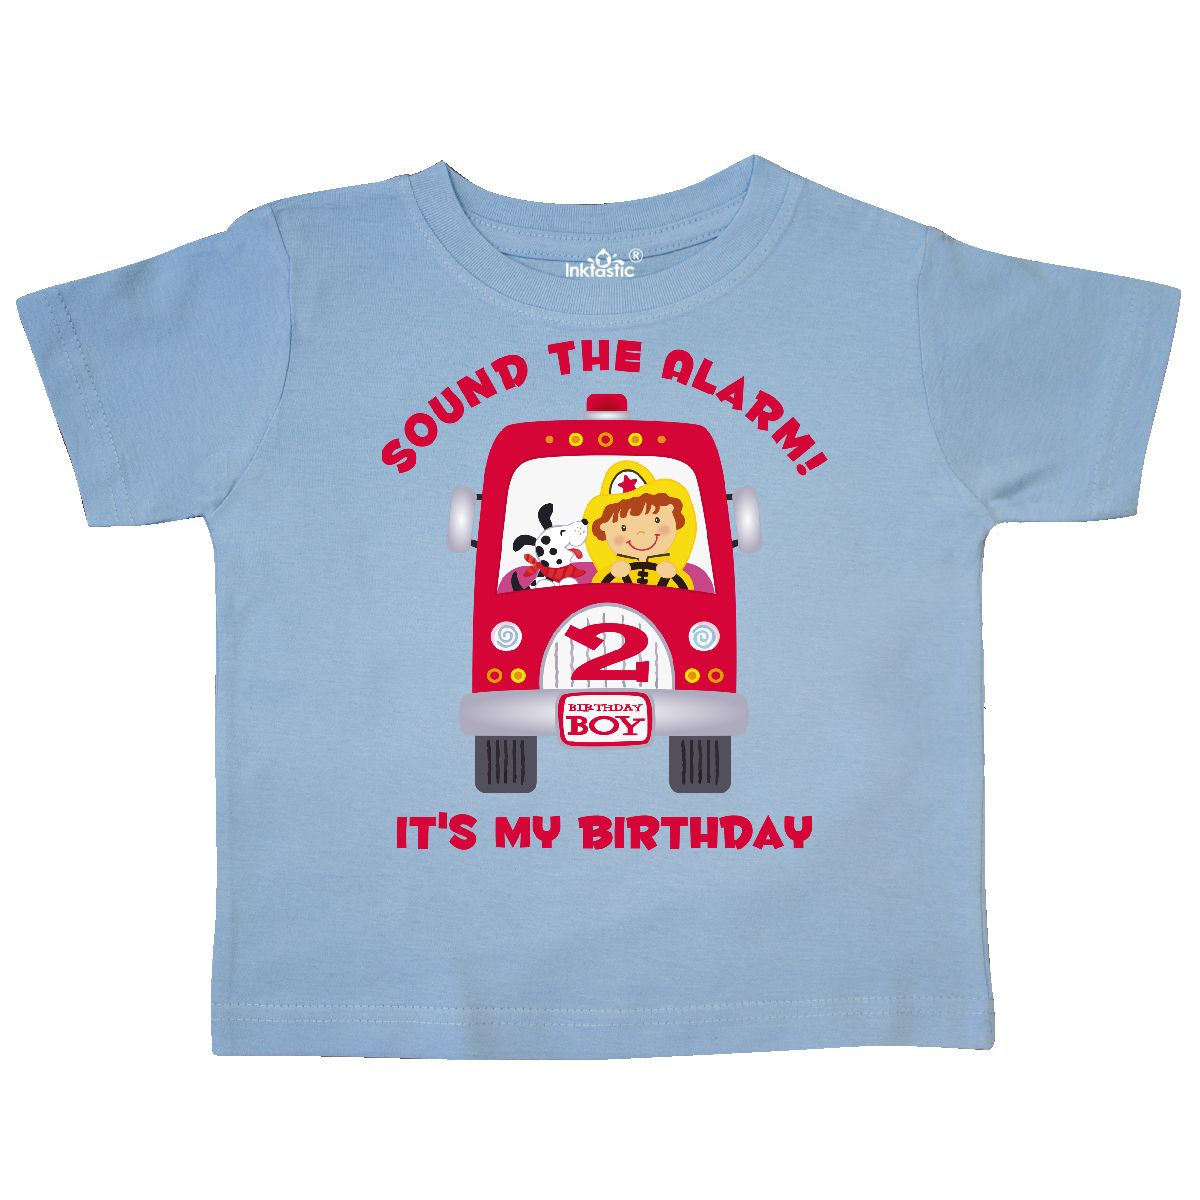 Birthday Boy Shirt 3t